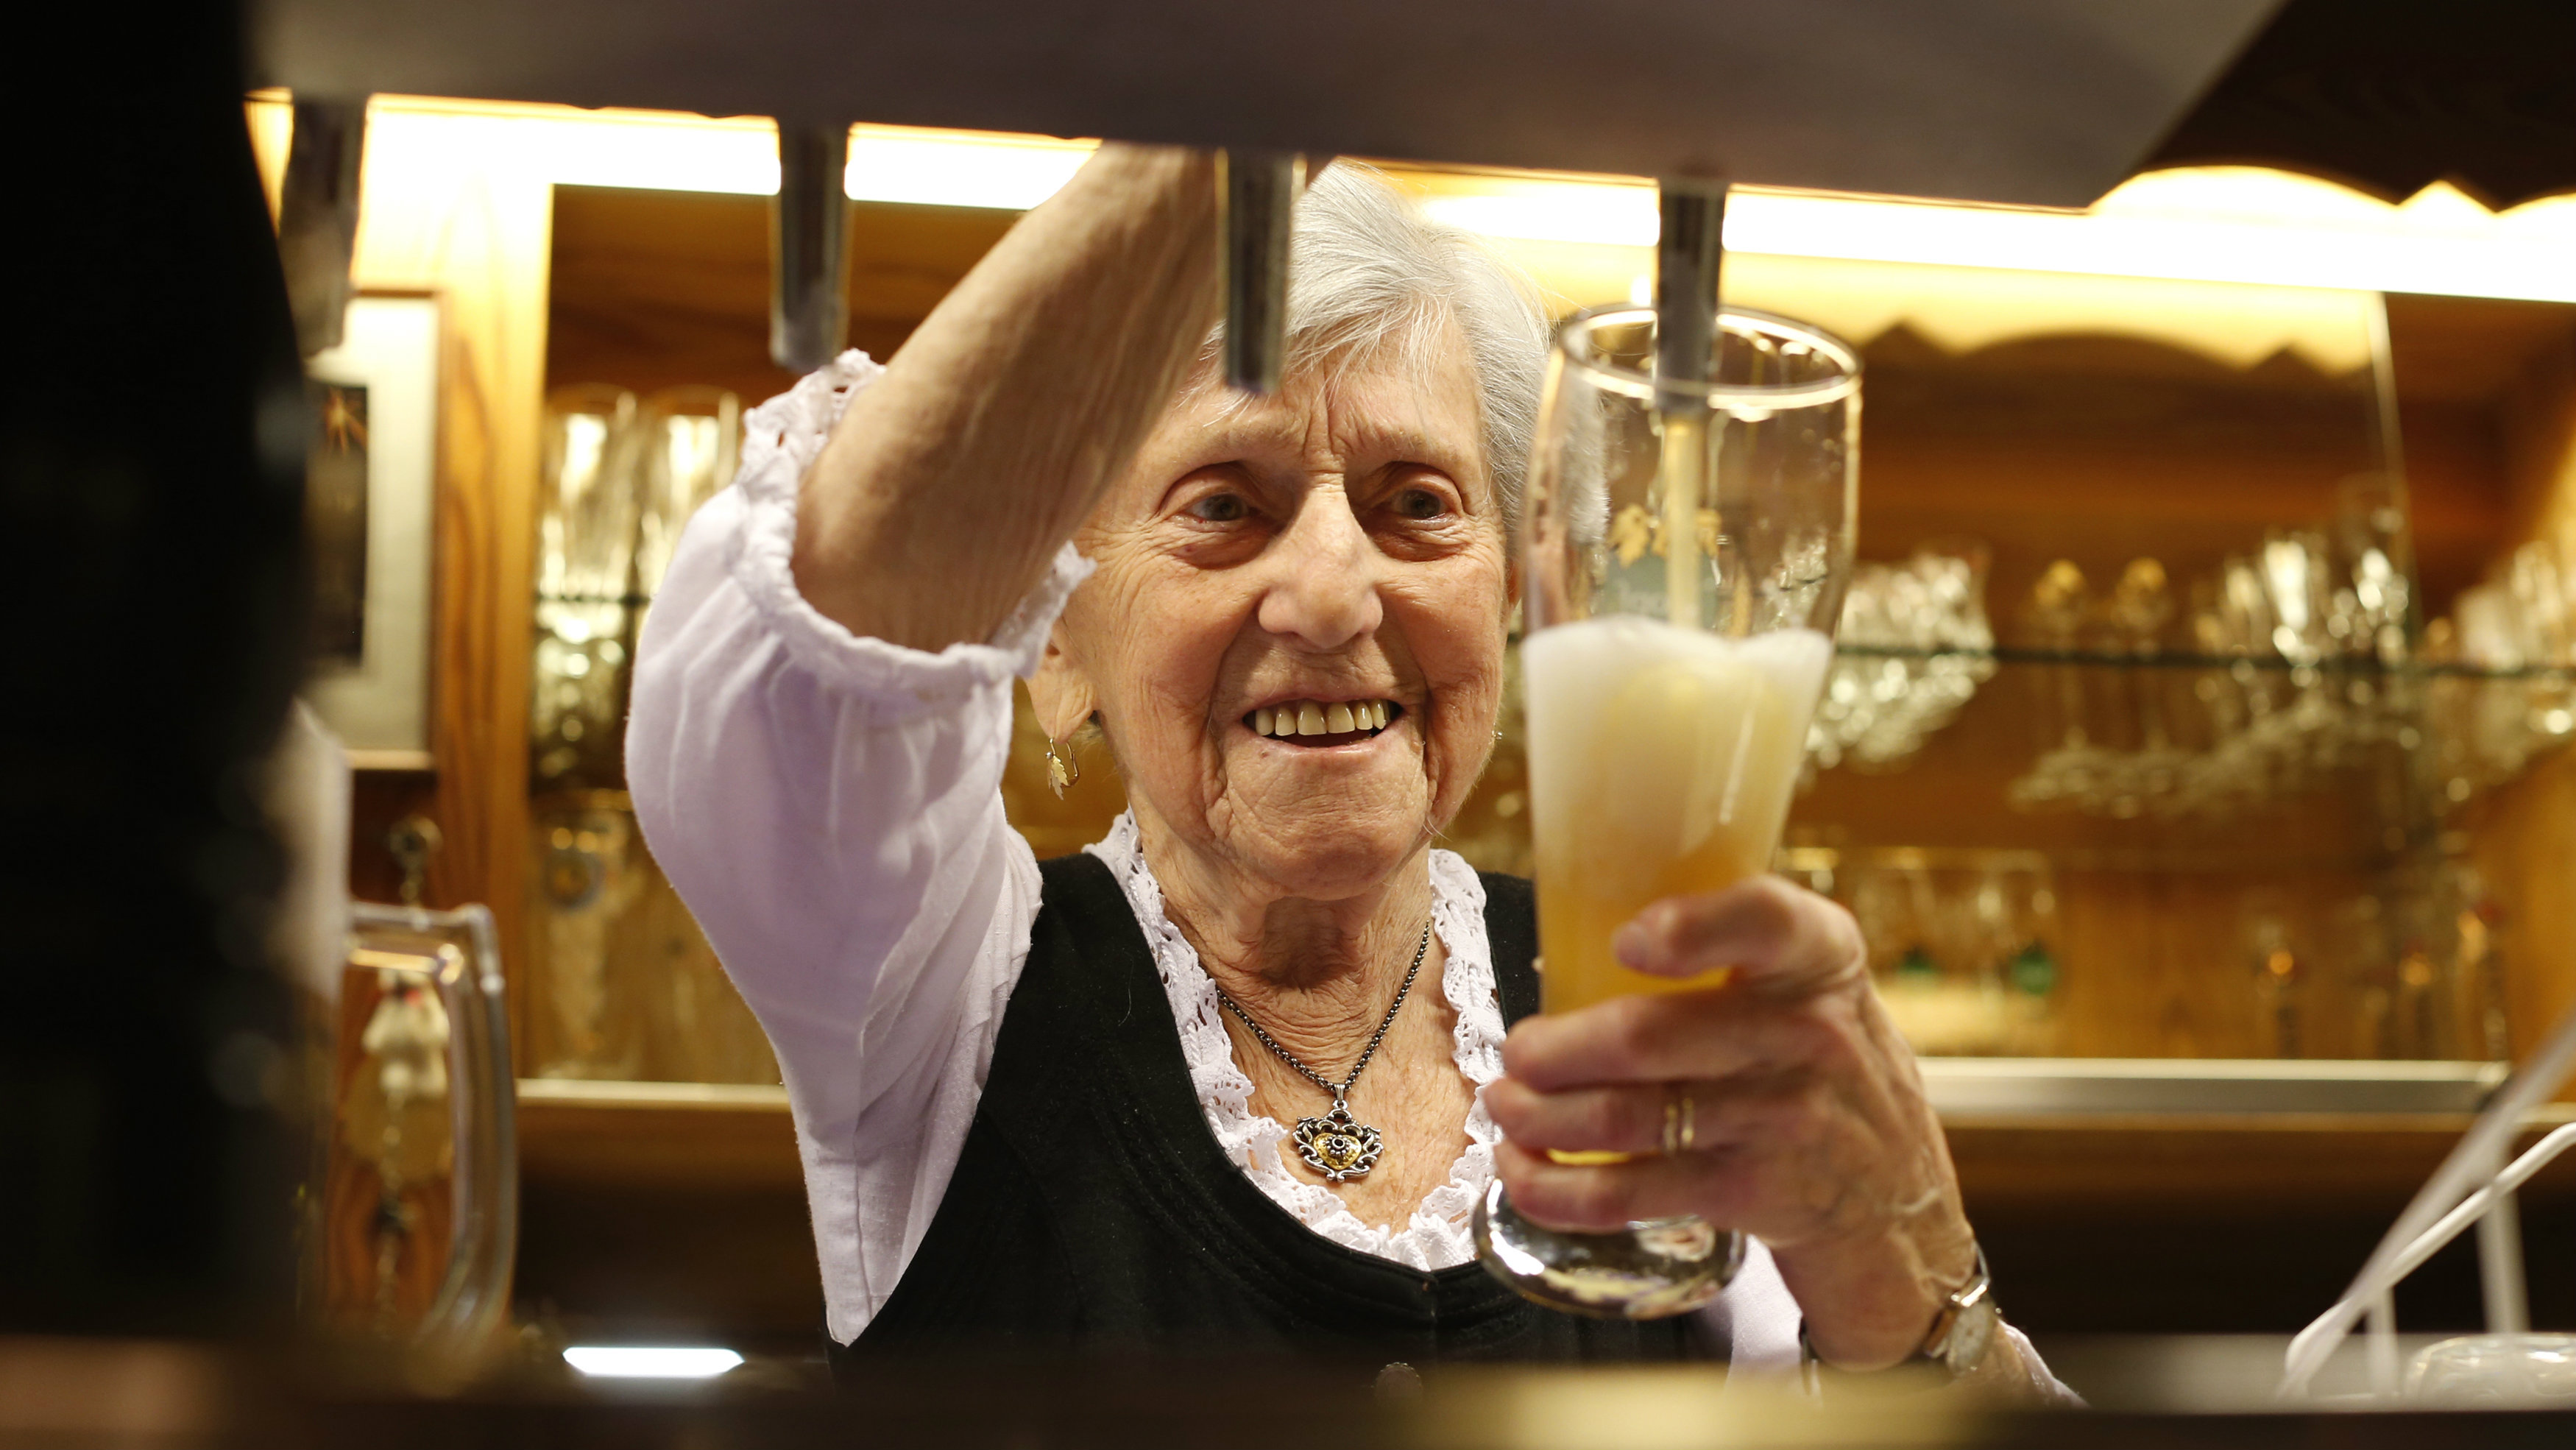 German waitress Kathi Kink, aged 91, pours beer into a glass in the 'Zum Goldenen Tal' restaurant in Naring near Weyarn, southern Germany February 1, 2015. Since 1939 at the age of 16, Kathi has worked as a waitress at the 'Zum Goldenen Tal' restaurant in Naring, serving her guests drinks and meals between five and 11 hours per day, five days a week. When not working, in her private time Kathi likes to travel the world or reads books. Since 1977 she has worn a mileometer to record her steps and has so far completed a distance of 81,000 kilometres up until the present day. Picture taken February 1. REUTERS/Michaela Rehle (GERMANY - Tags: BUSINESS EMPLOYMENT SOCIETY)